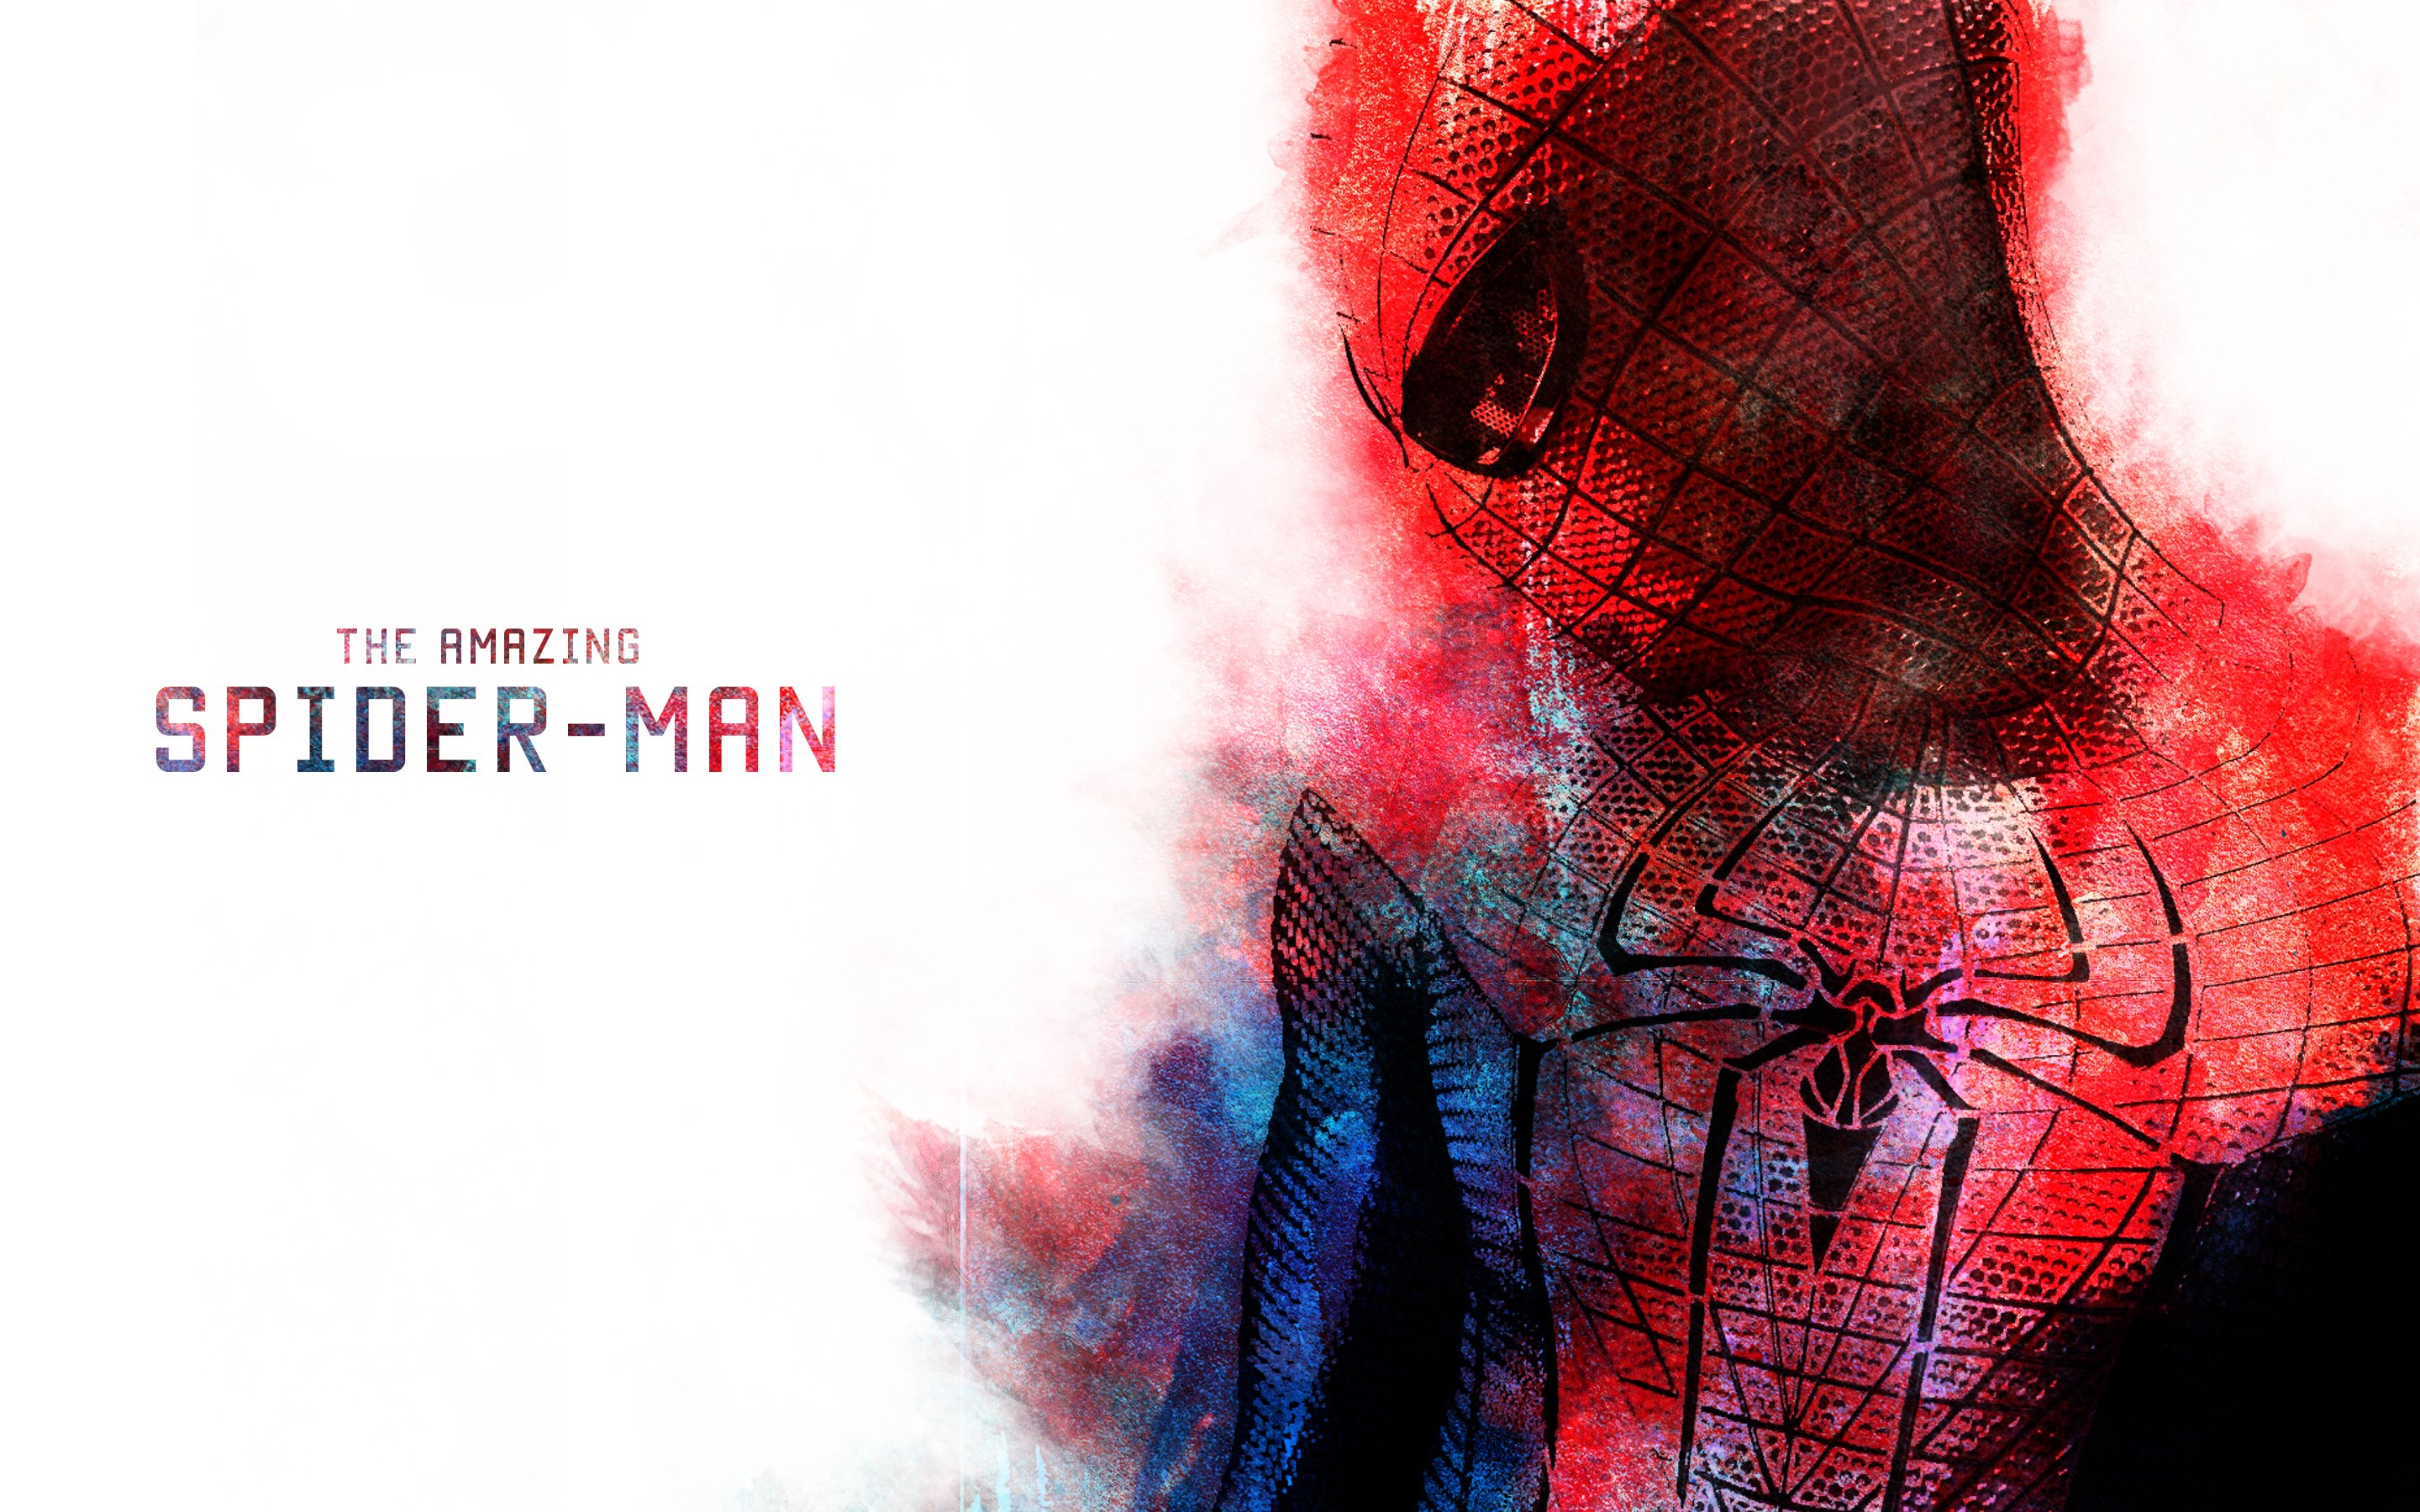 The Amazing Spider Man HD Wallpaper - WallpaperSafari